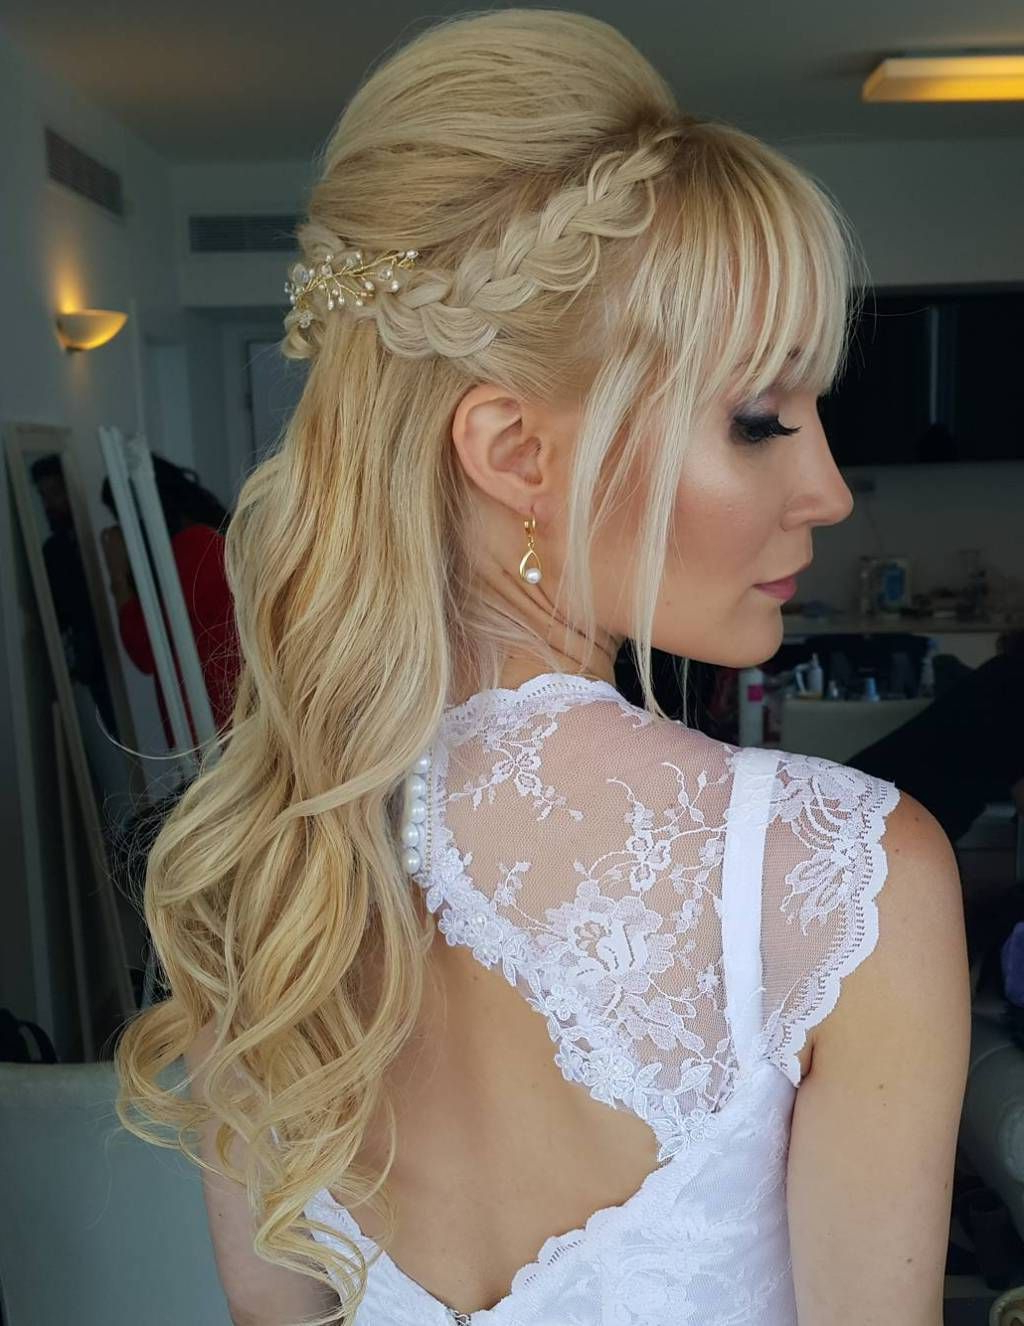 Half Up Half Down Wedding Hairstyles – 50 Stylish Ideas For Brides Inside Well Known Bouffant Half Updo Wedding Hairstyles For Long Hair (View 9 of 20)